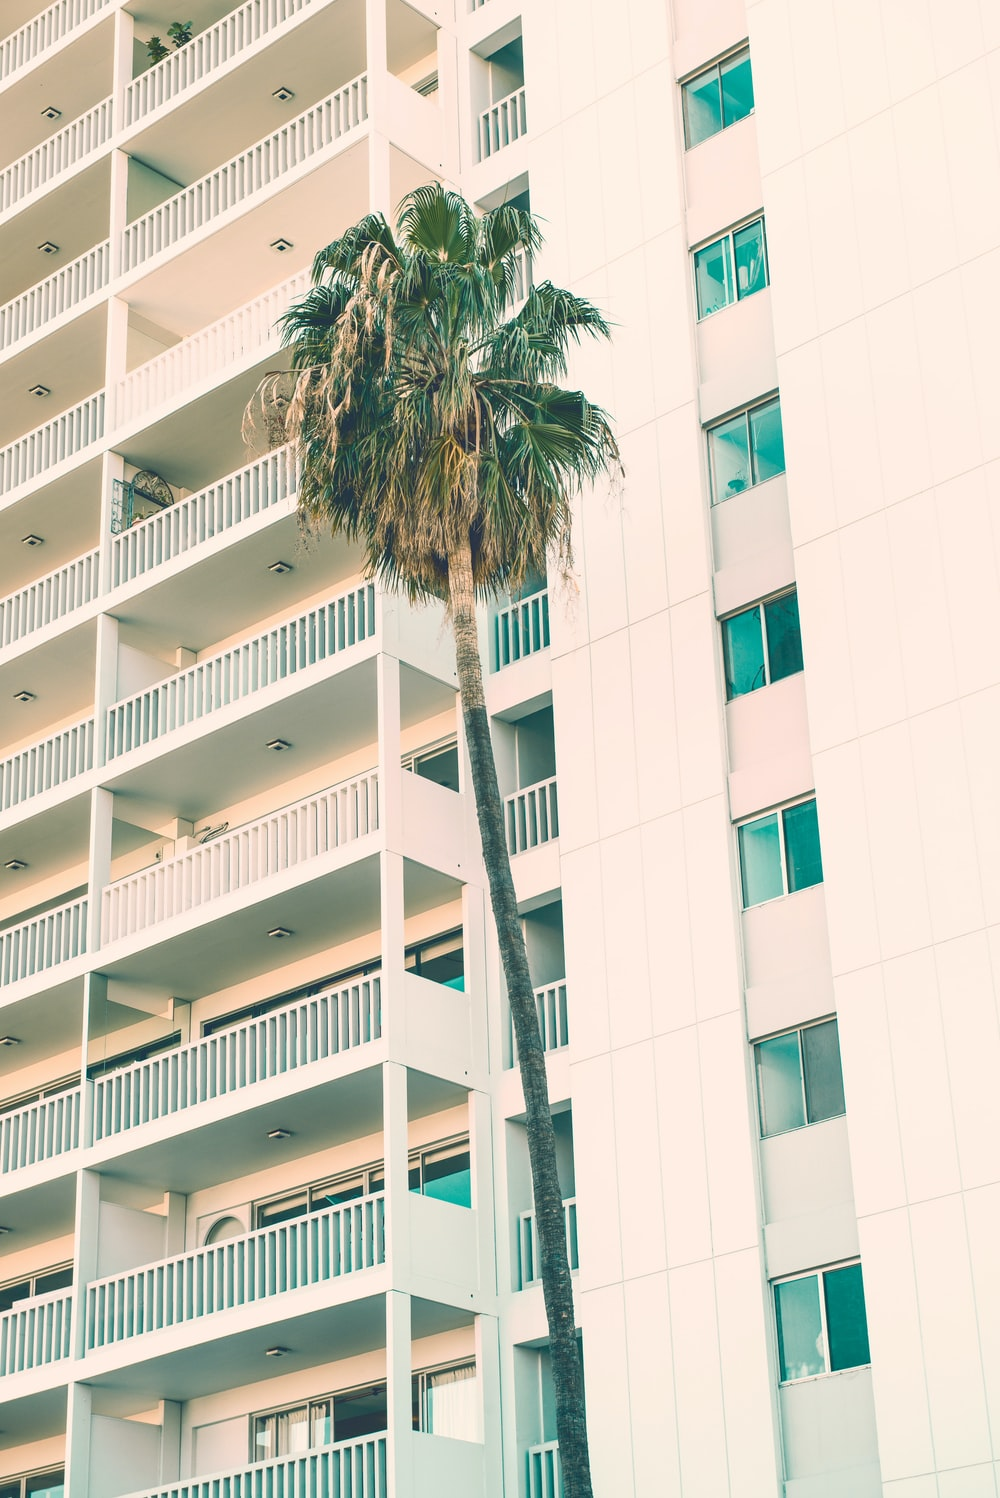 green palm tree beside white high-rise building during daytime